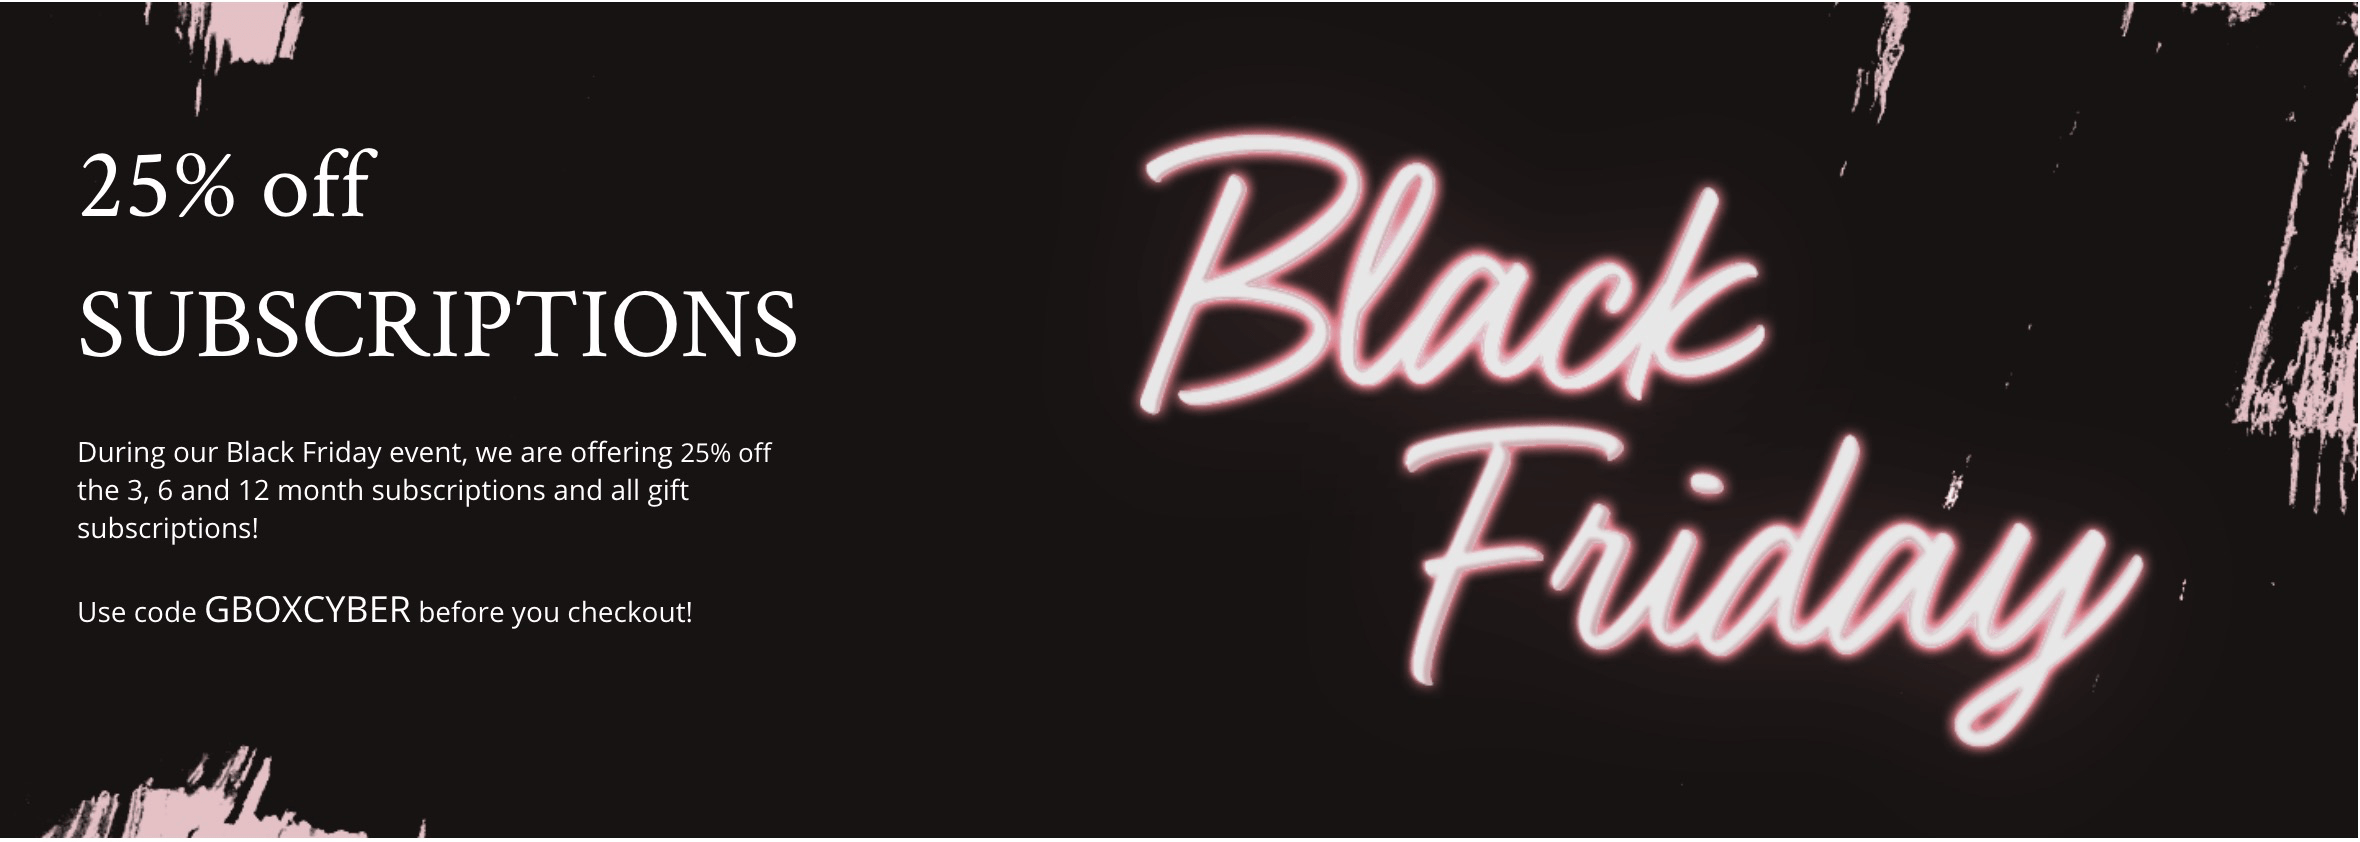 GLOSSYBOX Black Friday Deal: 25% Off 3+ Month Subscriptions!